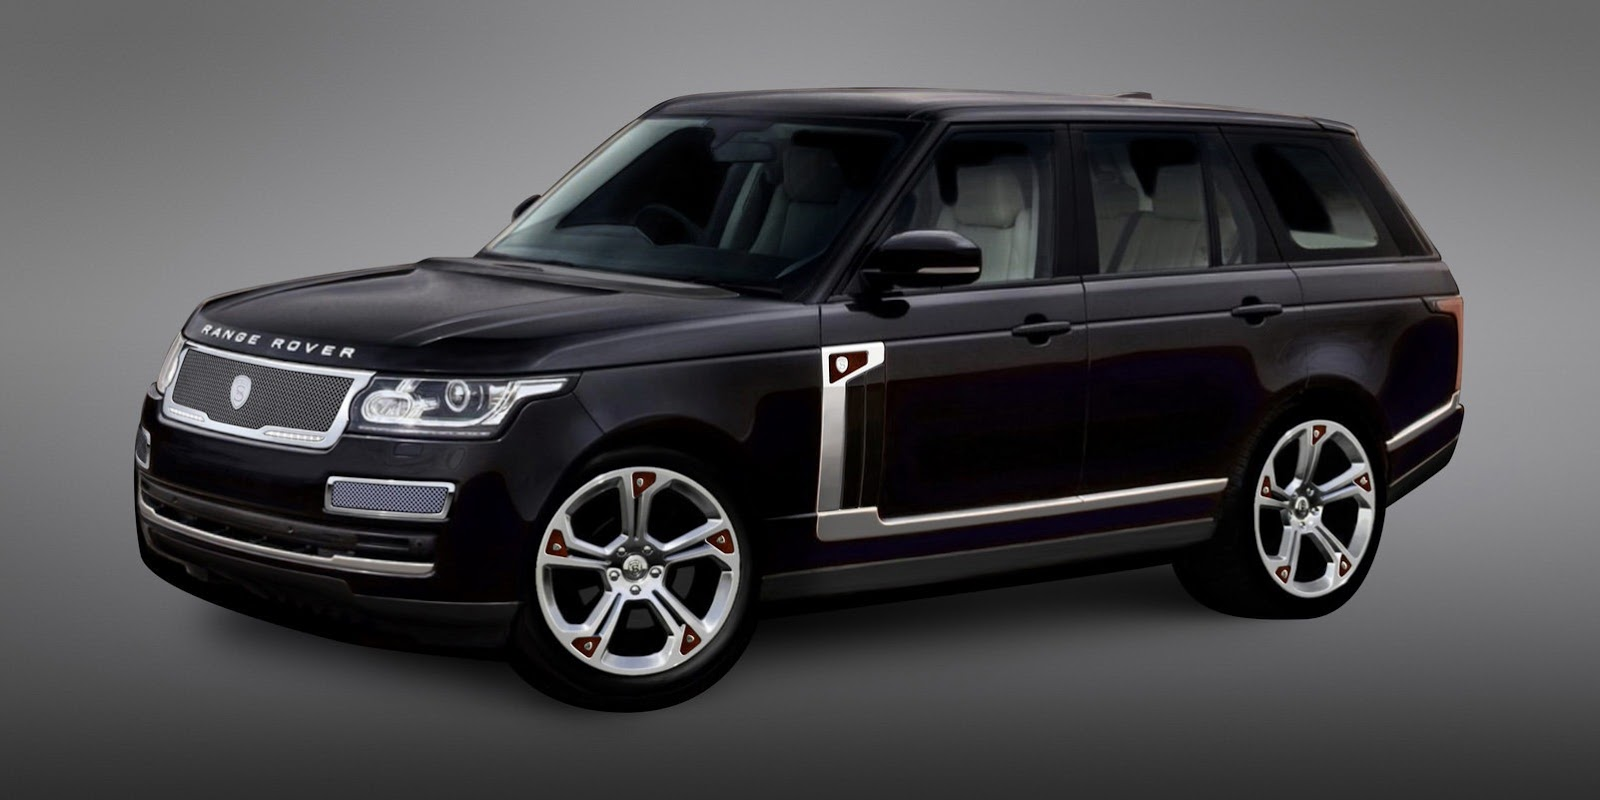 New 2013 Range Rover Gets Strut Visual Tuning Kit